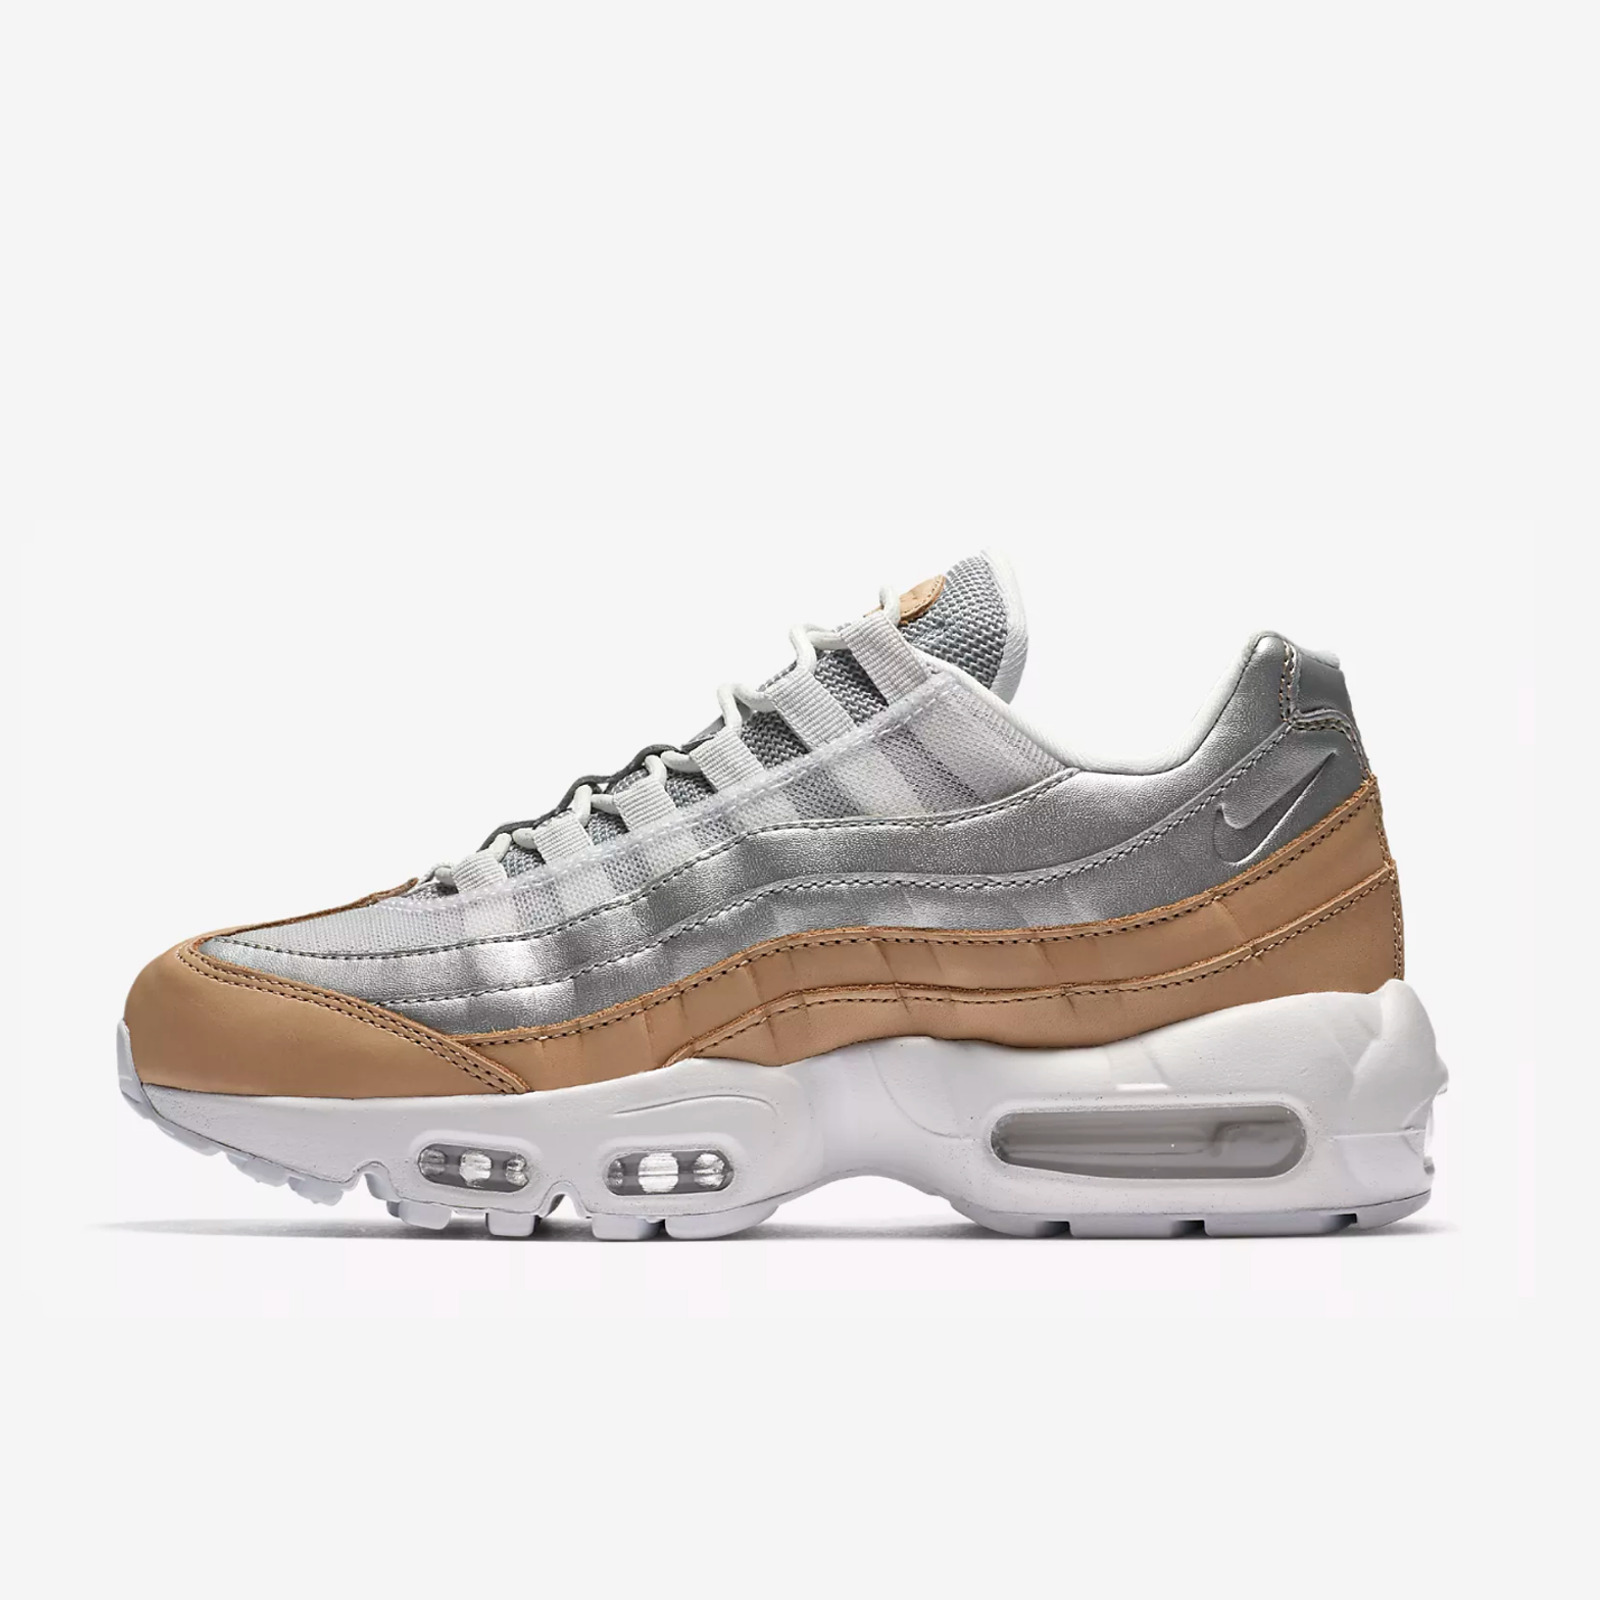 first rate 424ad 27d3b Details about NIKE WMNS AIR MAX 95 SE AH8697-002 PURE PLATINUM WHITE BIO  BEIGE METALLIC SILVER